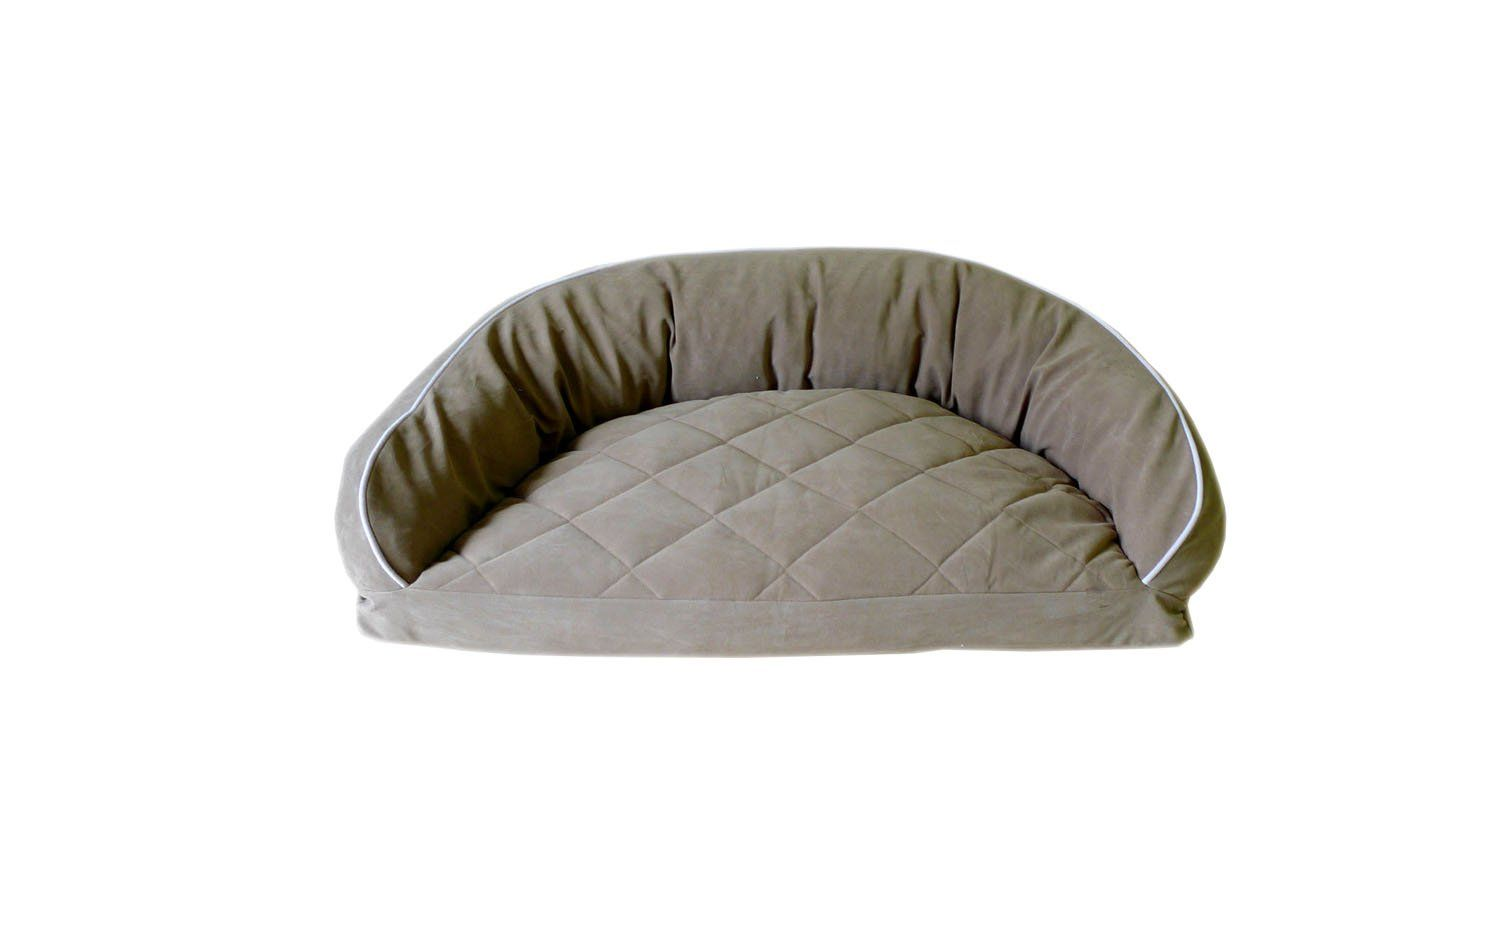 Cpc Diamond Quilted Semi Circle Sage Lounge For Dogs And Cats With Linen Piping 27 X 19 X 10 Inch Very Kind Of Your Presen Dog Bed Bolster Dog Bed Orthopedic Dog Bed